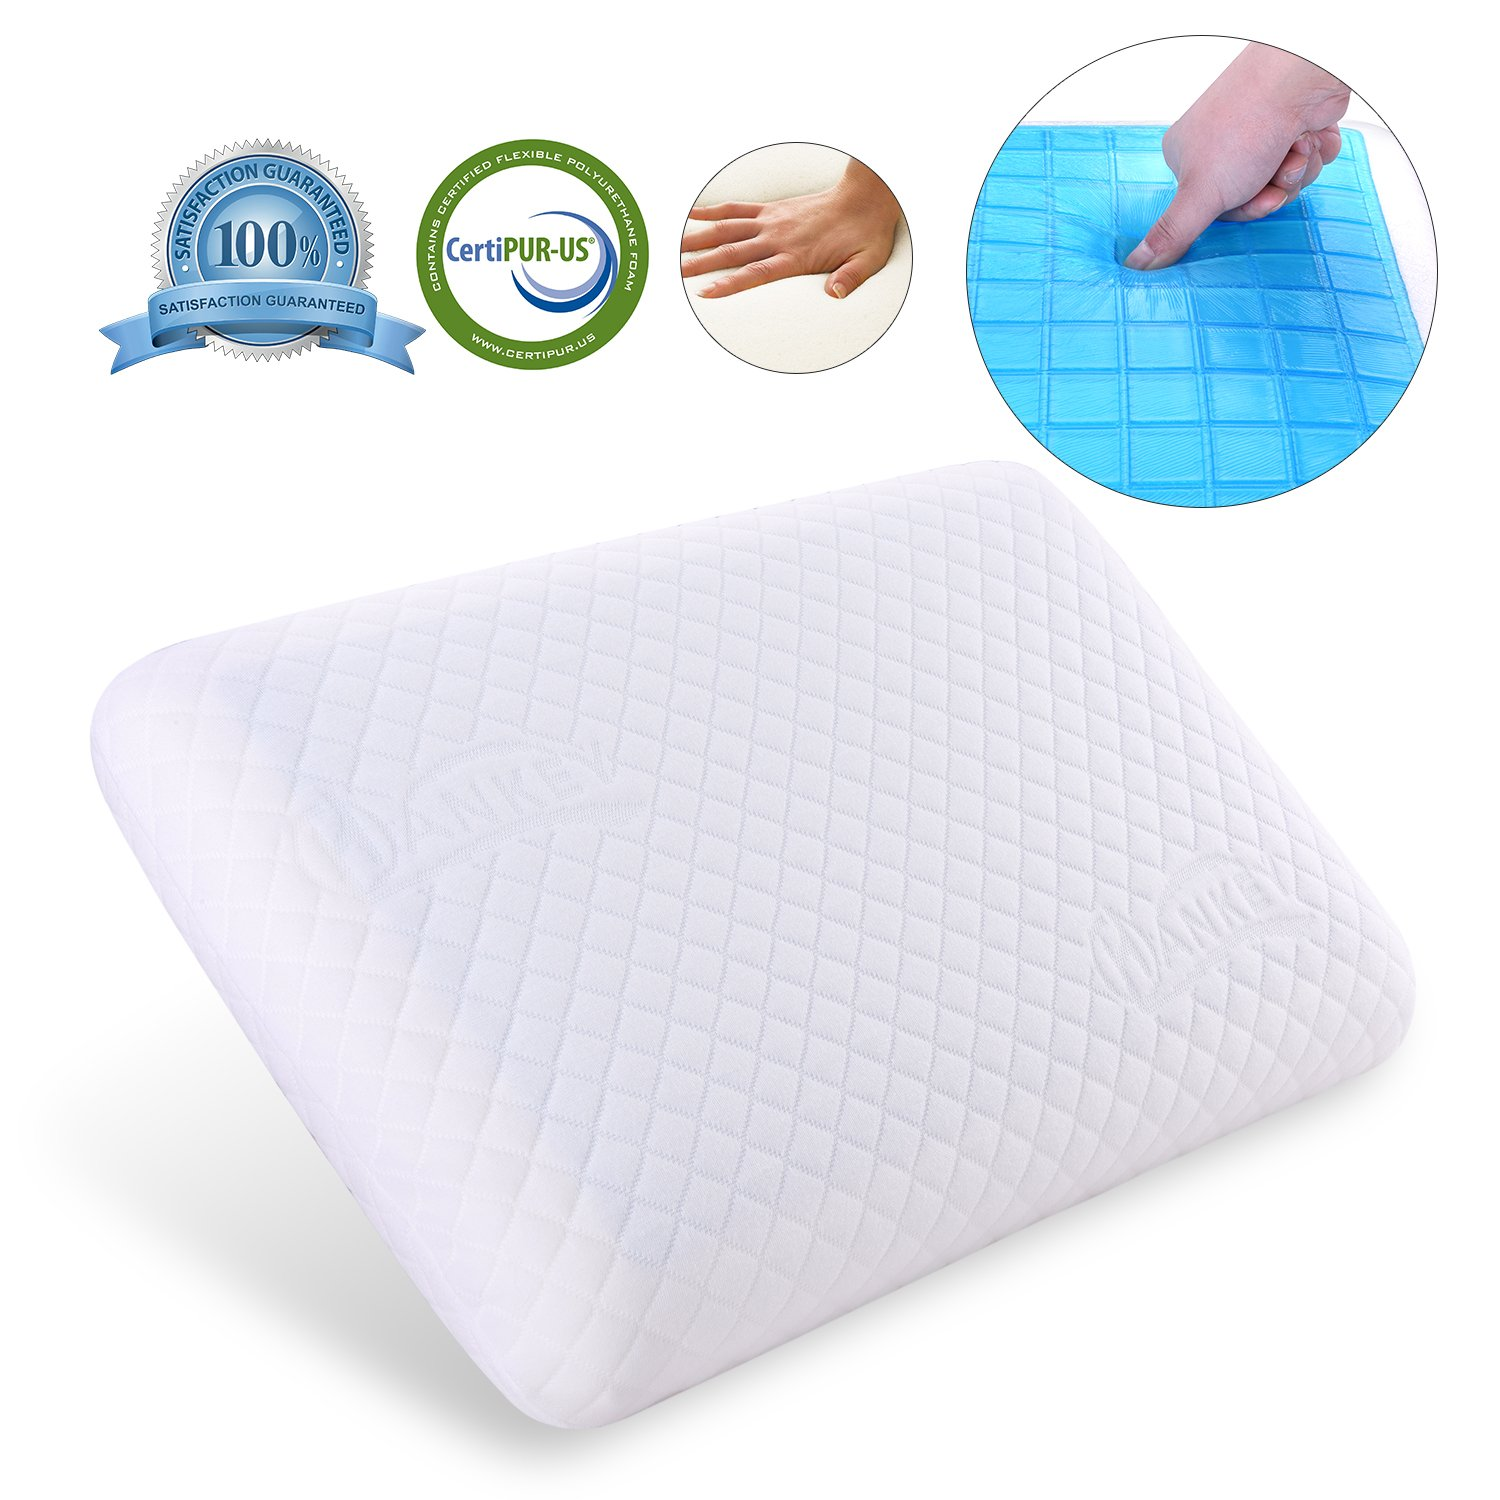 Hankey Double-Sided Memory Foam Cool Gel Pillow for Summer and Winter Use, Orthopedic Neck & Back Support Pillows, Soft & Comfortable Design, Removable Washable Hypoallergenic Cover, 60 x 40 x 12 CM (1 Pack) PL01